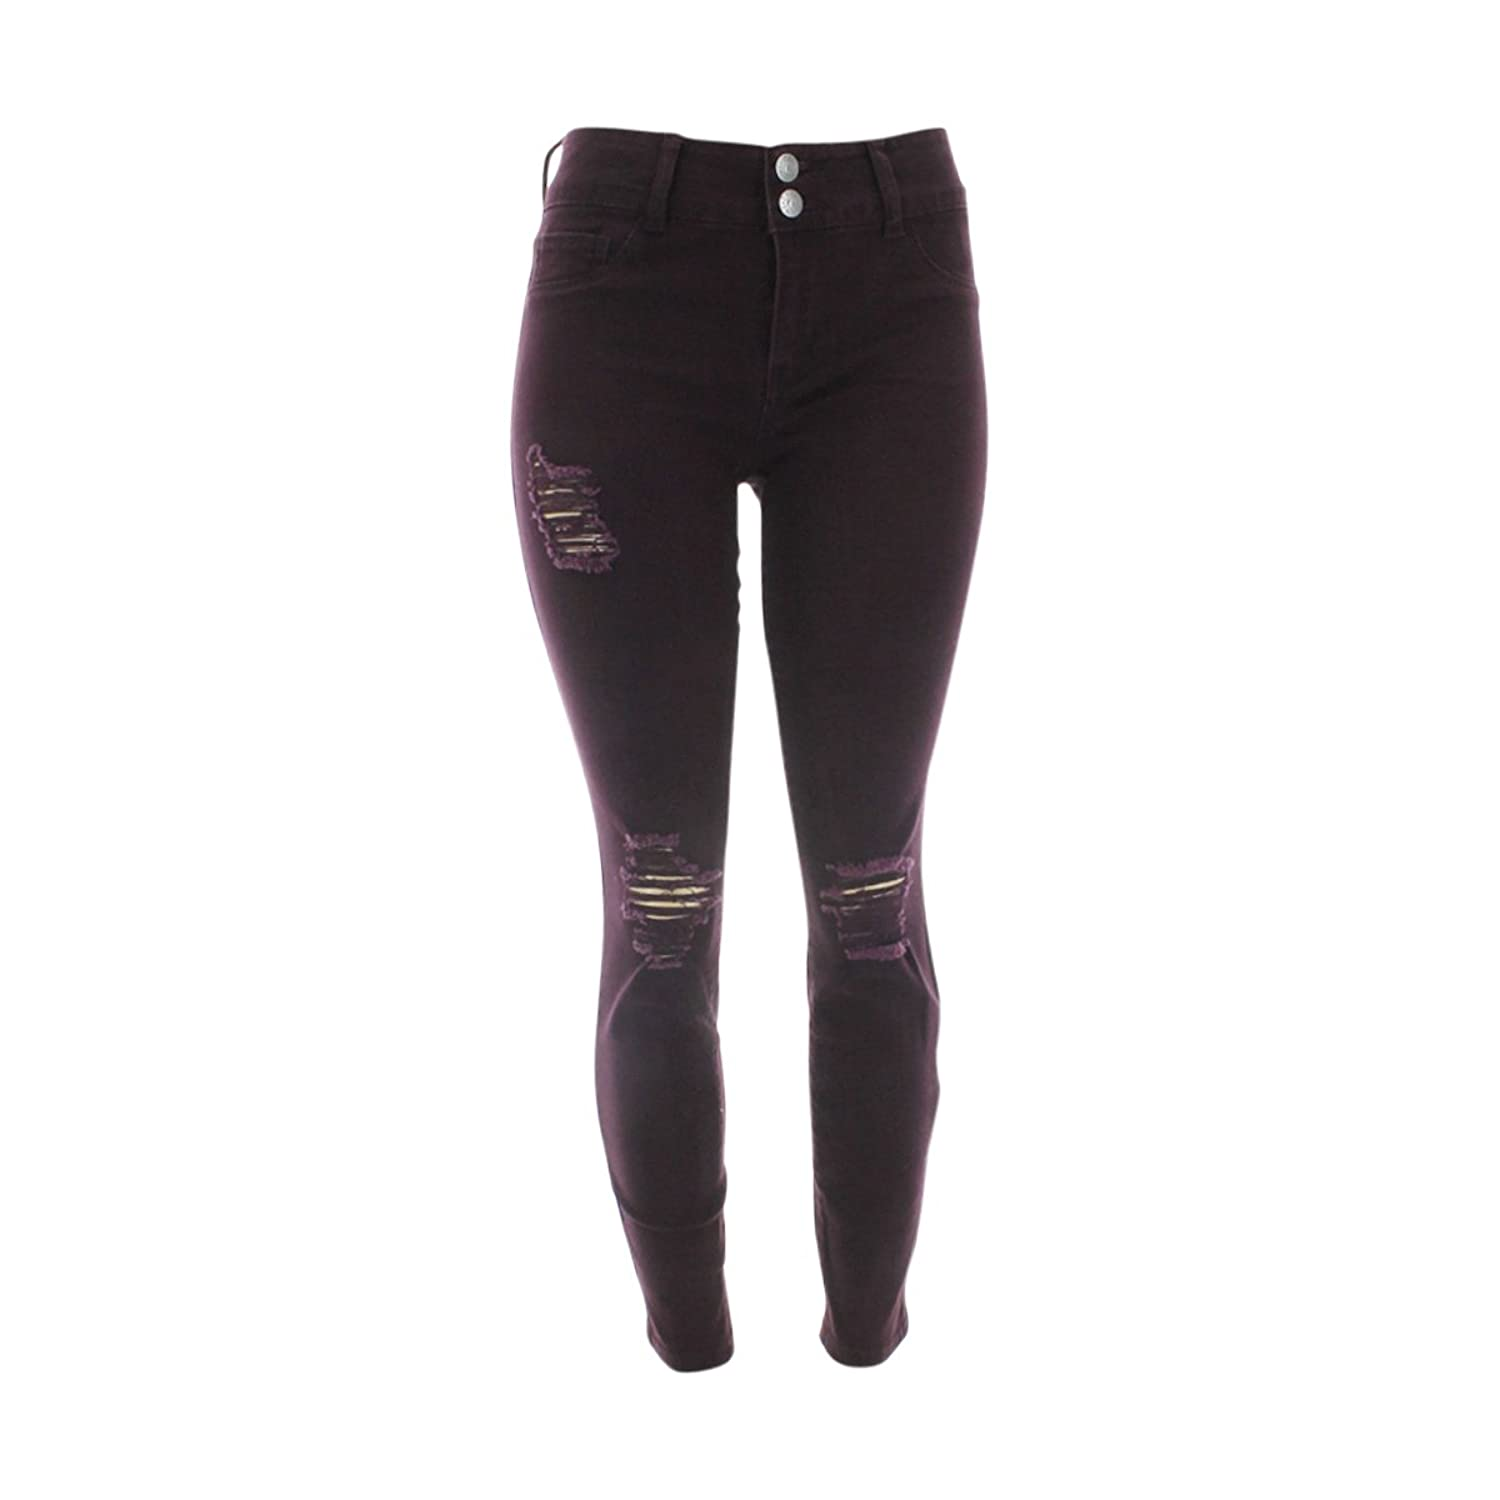 Cello Jeans - Women's 2 Button Knee Rips Skinny Jeans - Plum